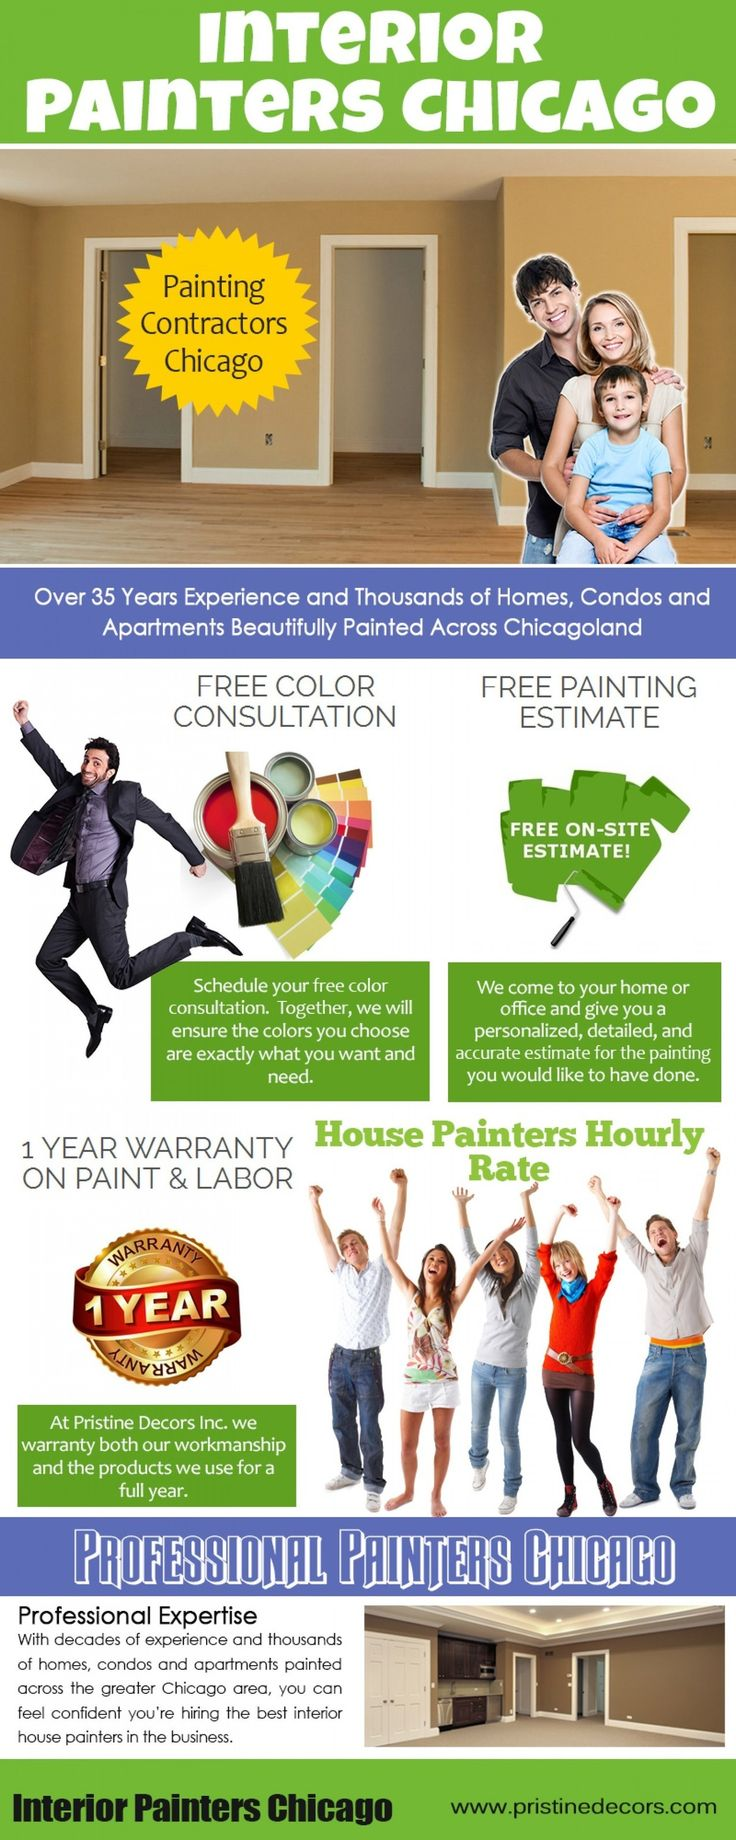 Painting amp remodeling contractors painters northern new jersey -  Roofing Construction House Painters Chicago